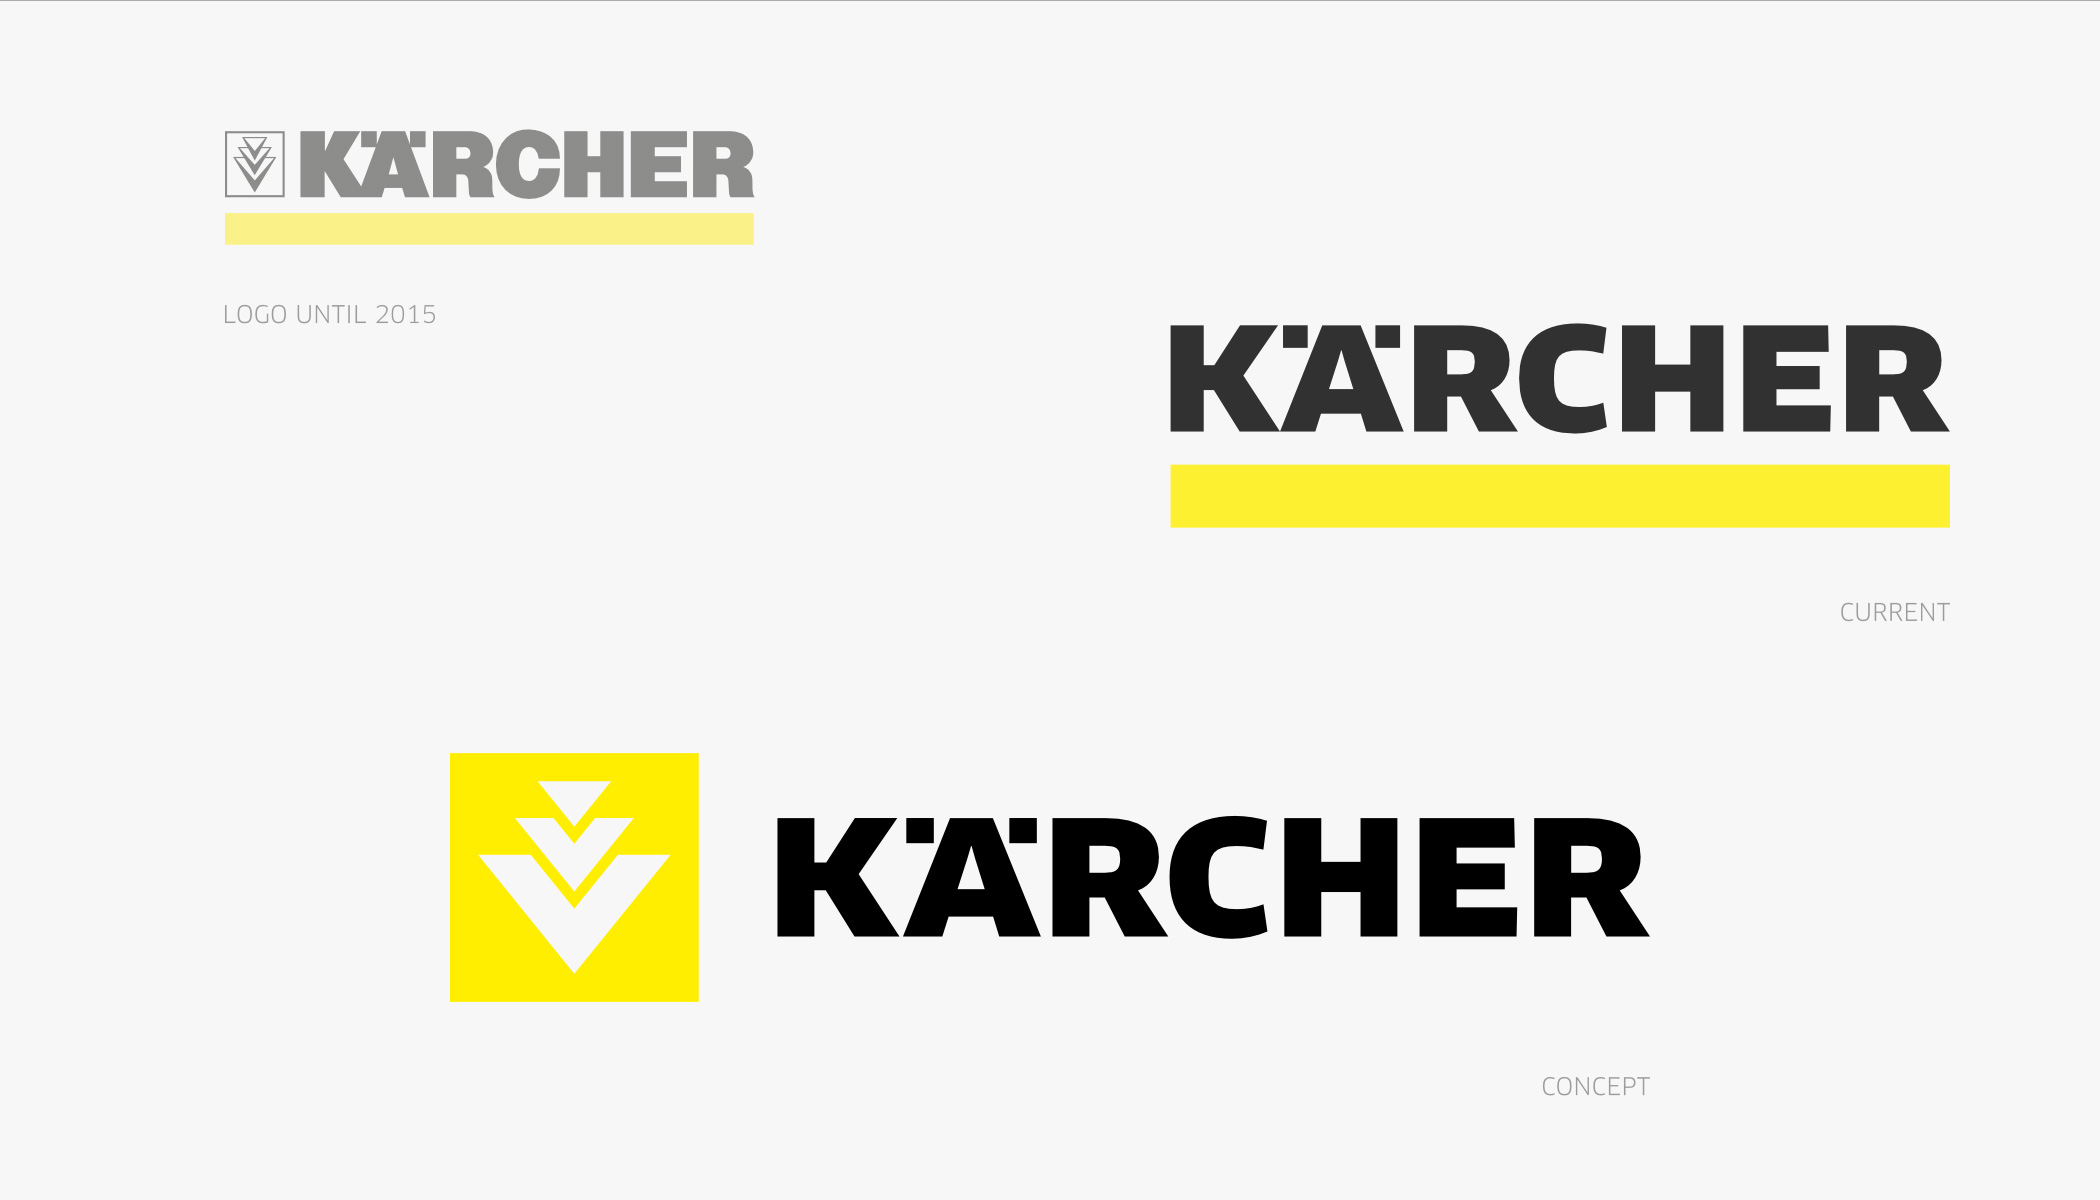 Kärcher - redesign concept: Logo evolution